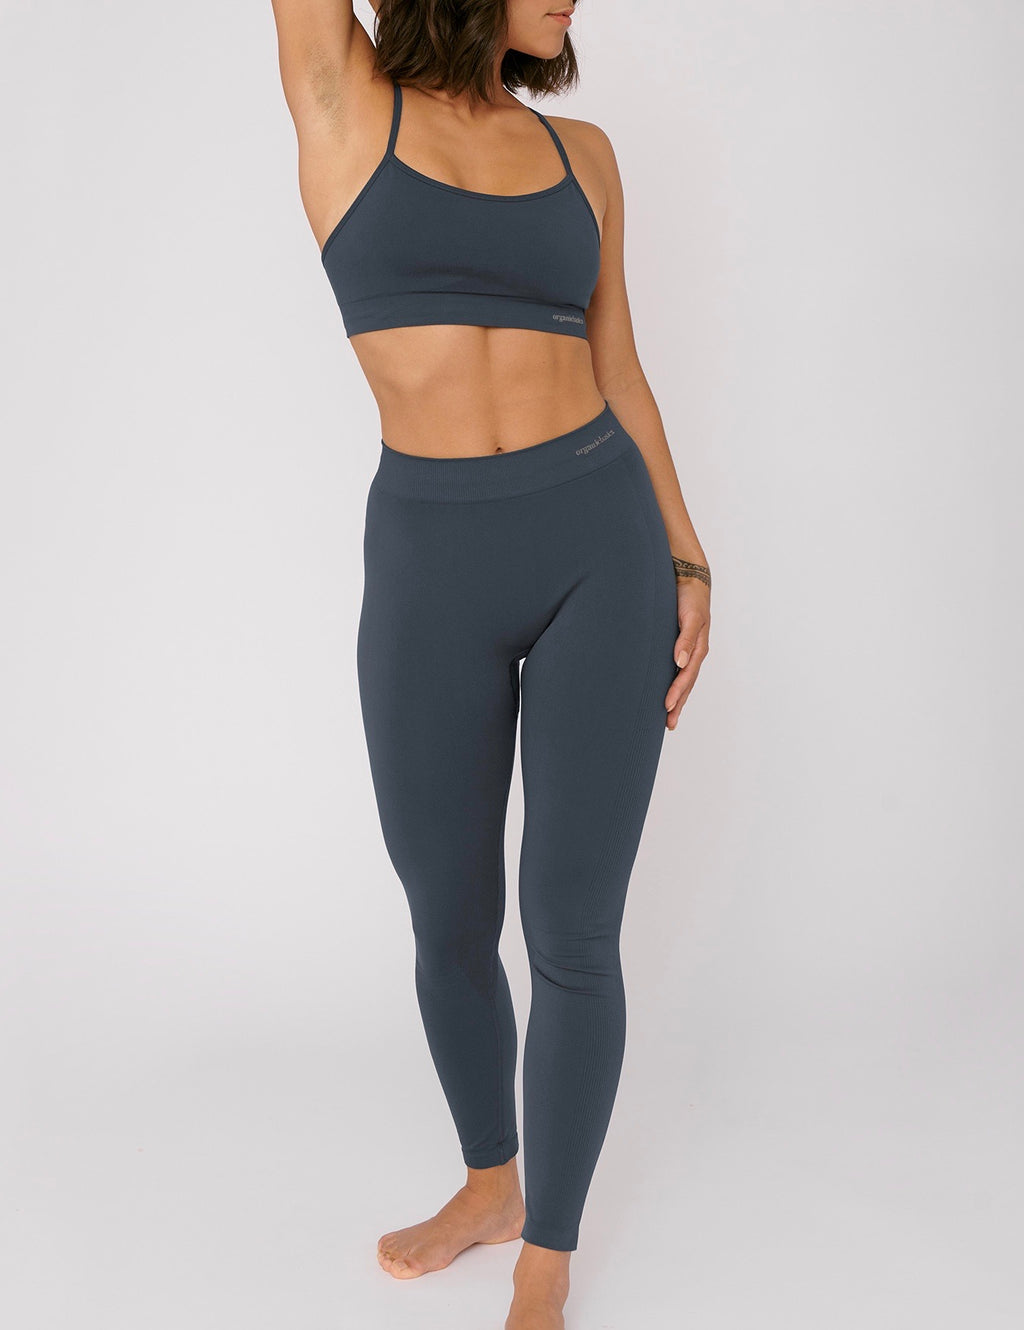 SilverTech Active Leggings, Sea Blue